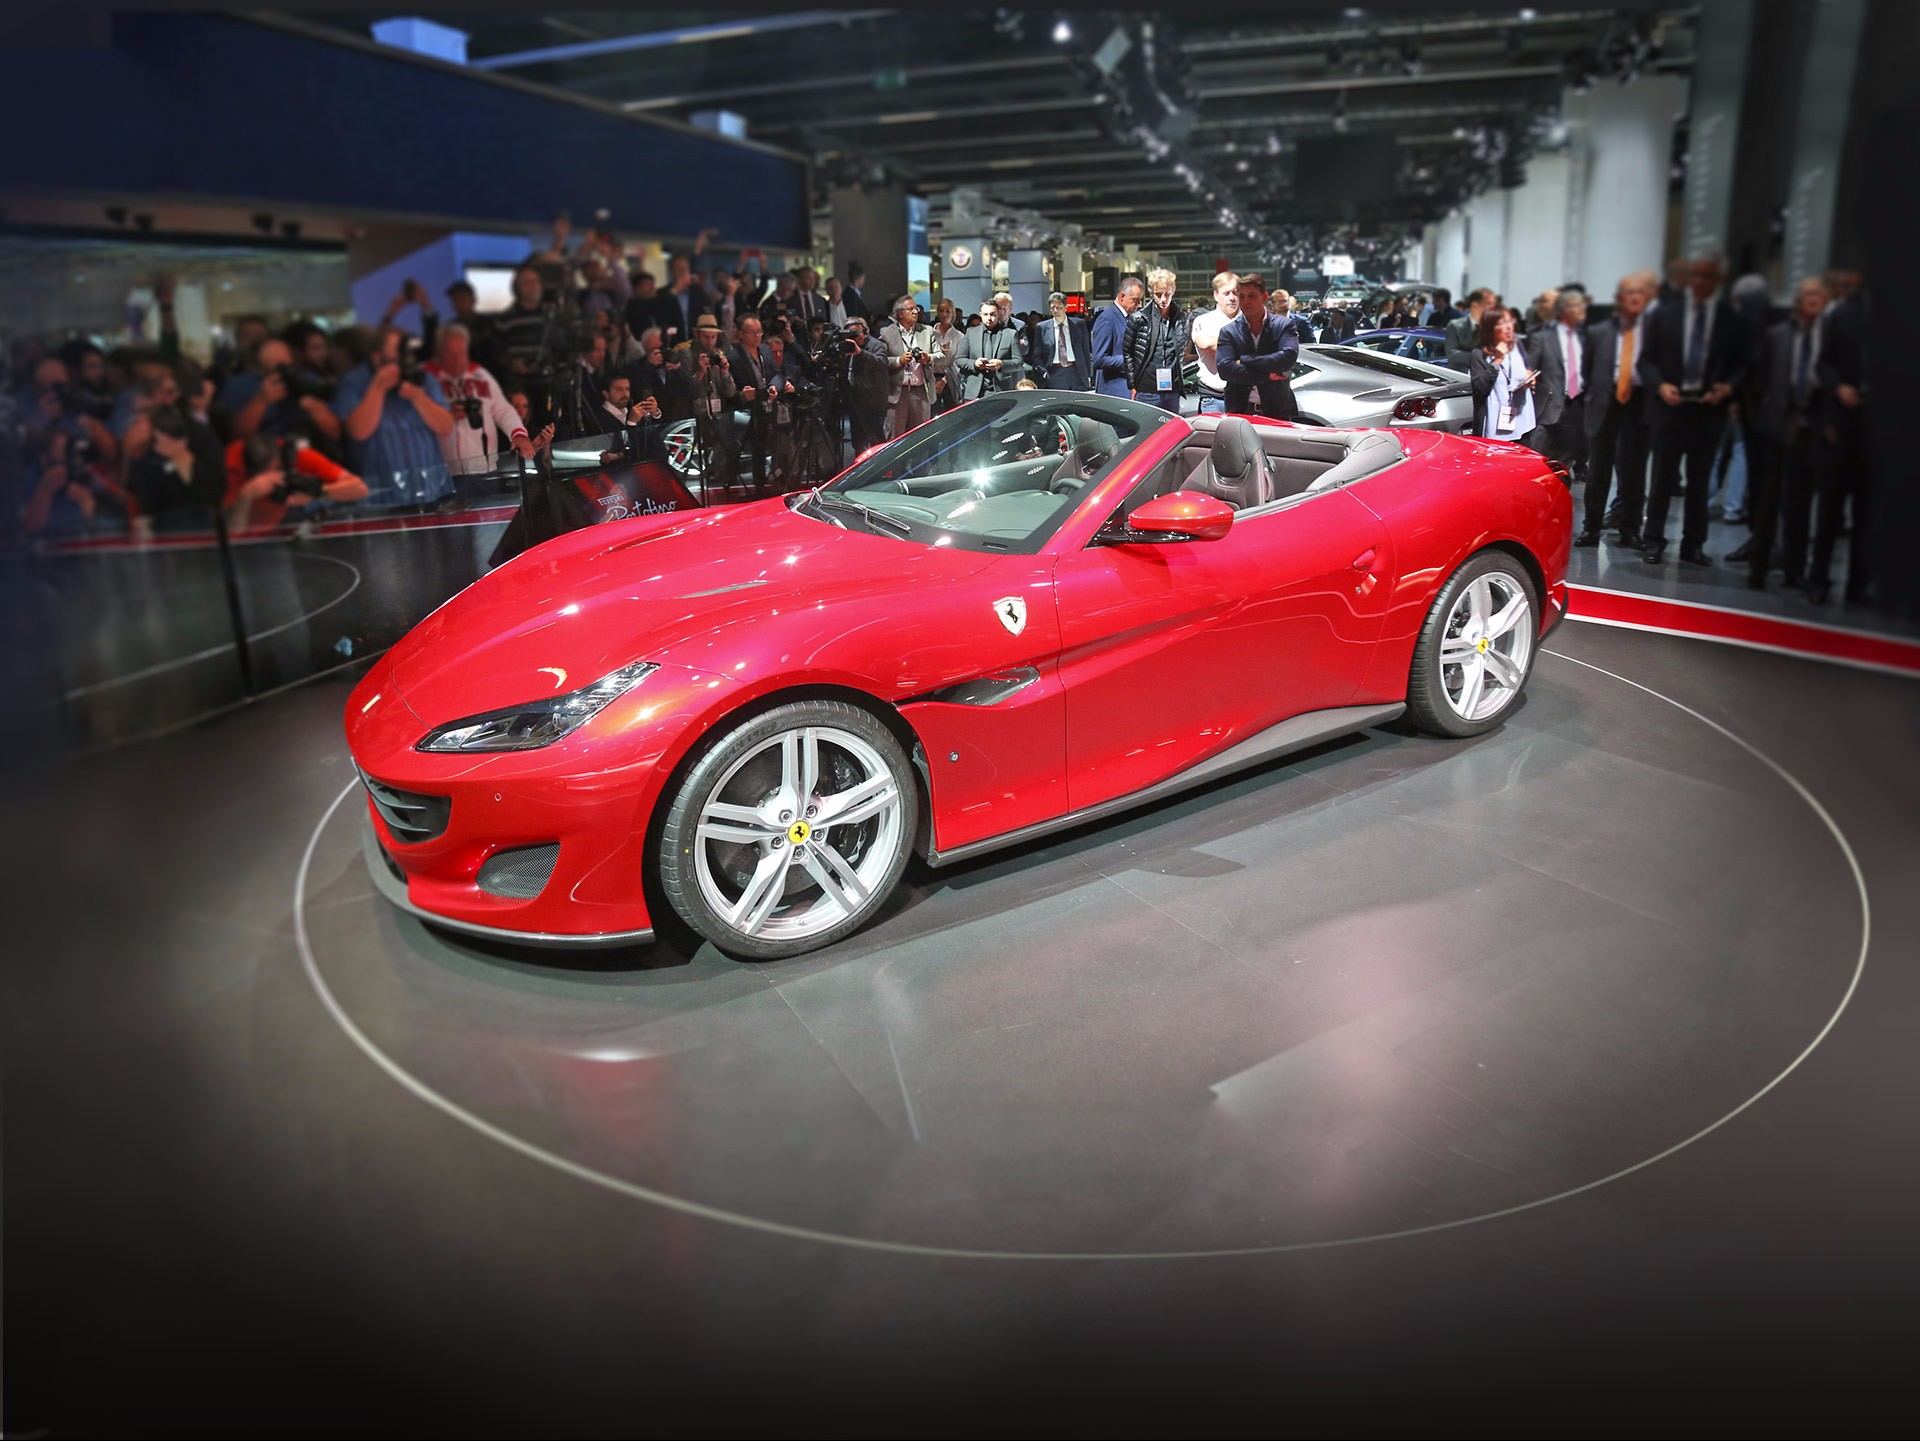 The Ferrari Portofino premieres at Frankfurt